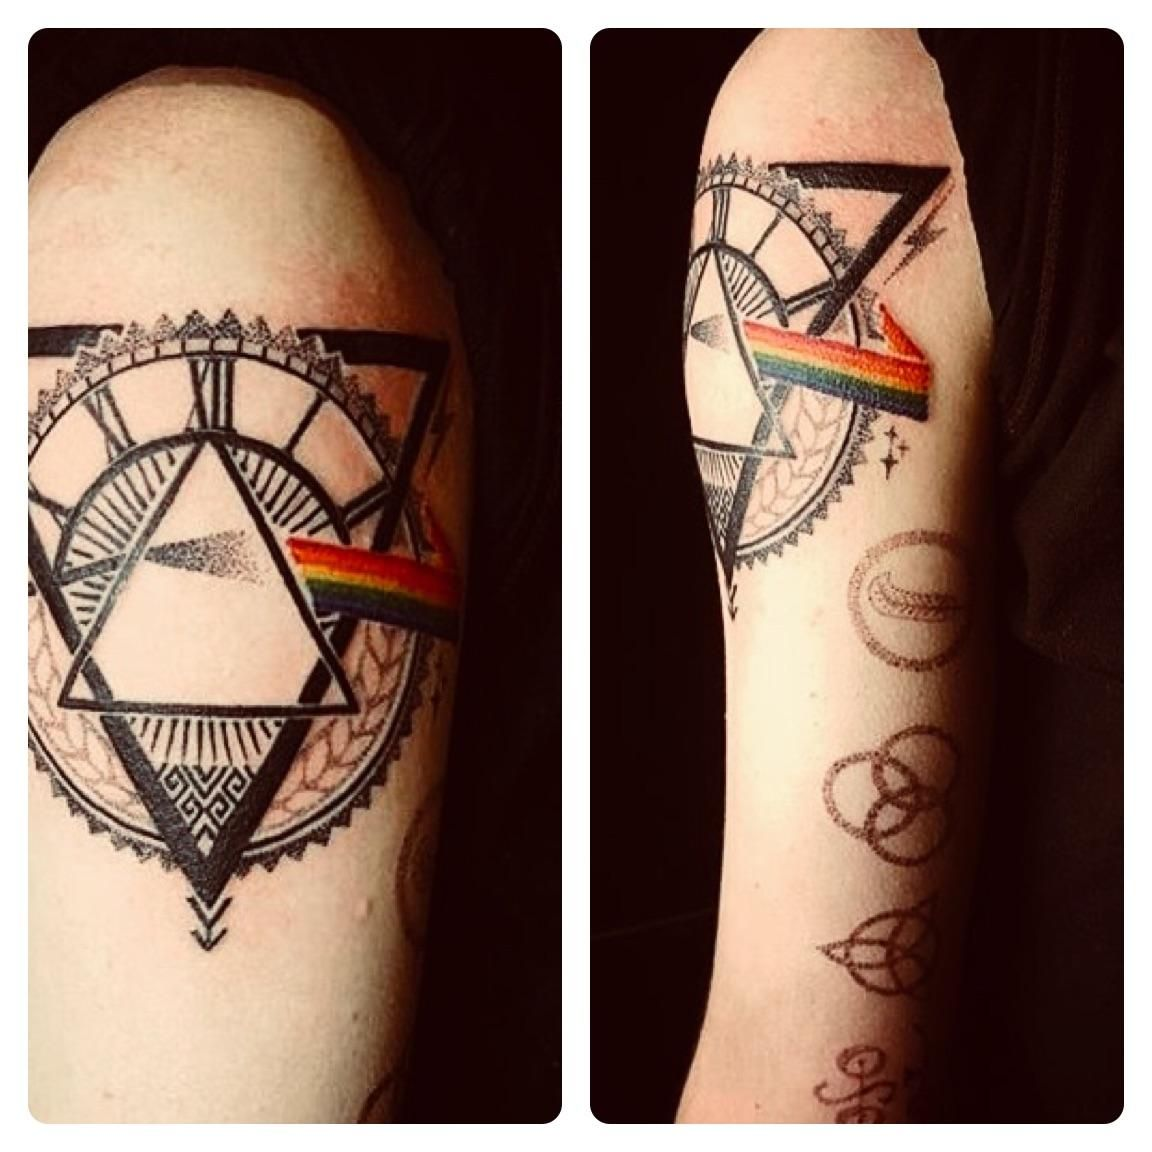 Pink Floyd Tattoo By Jenna Chasinghawk At Pins And Needles Newcastle